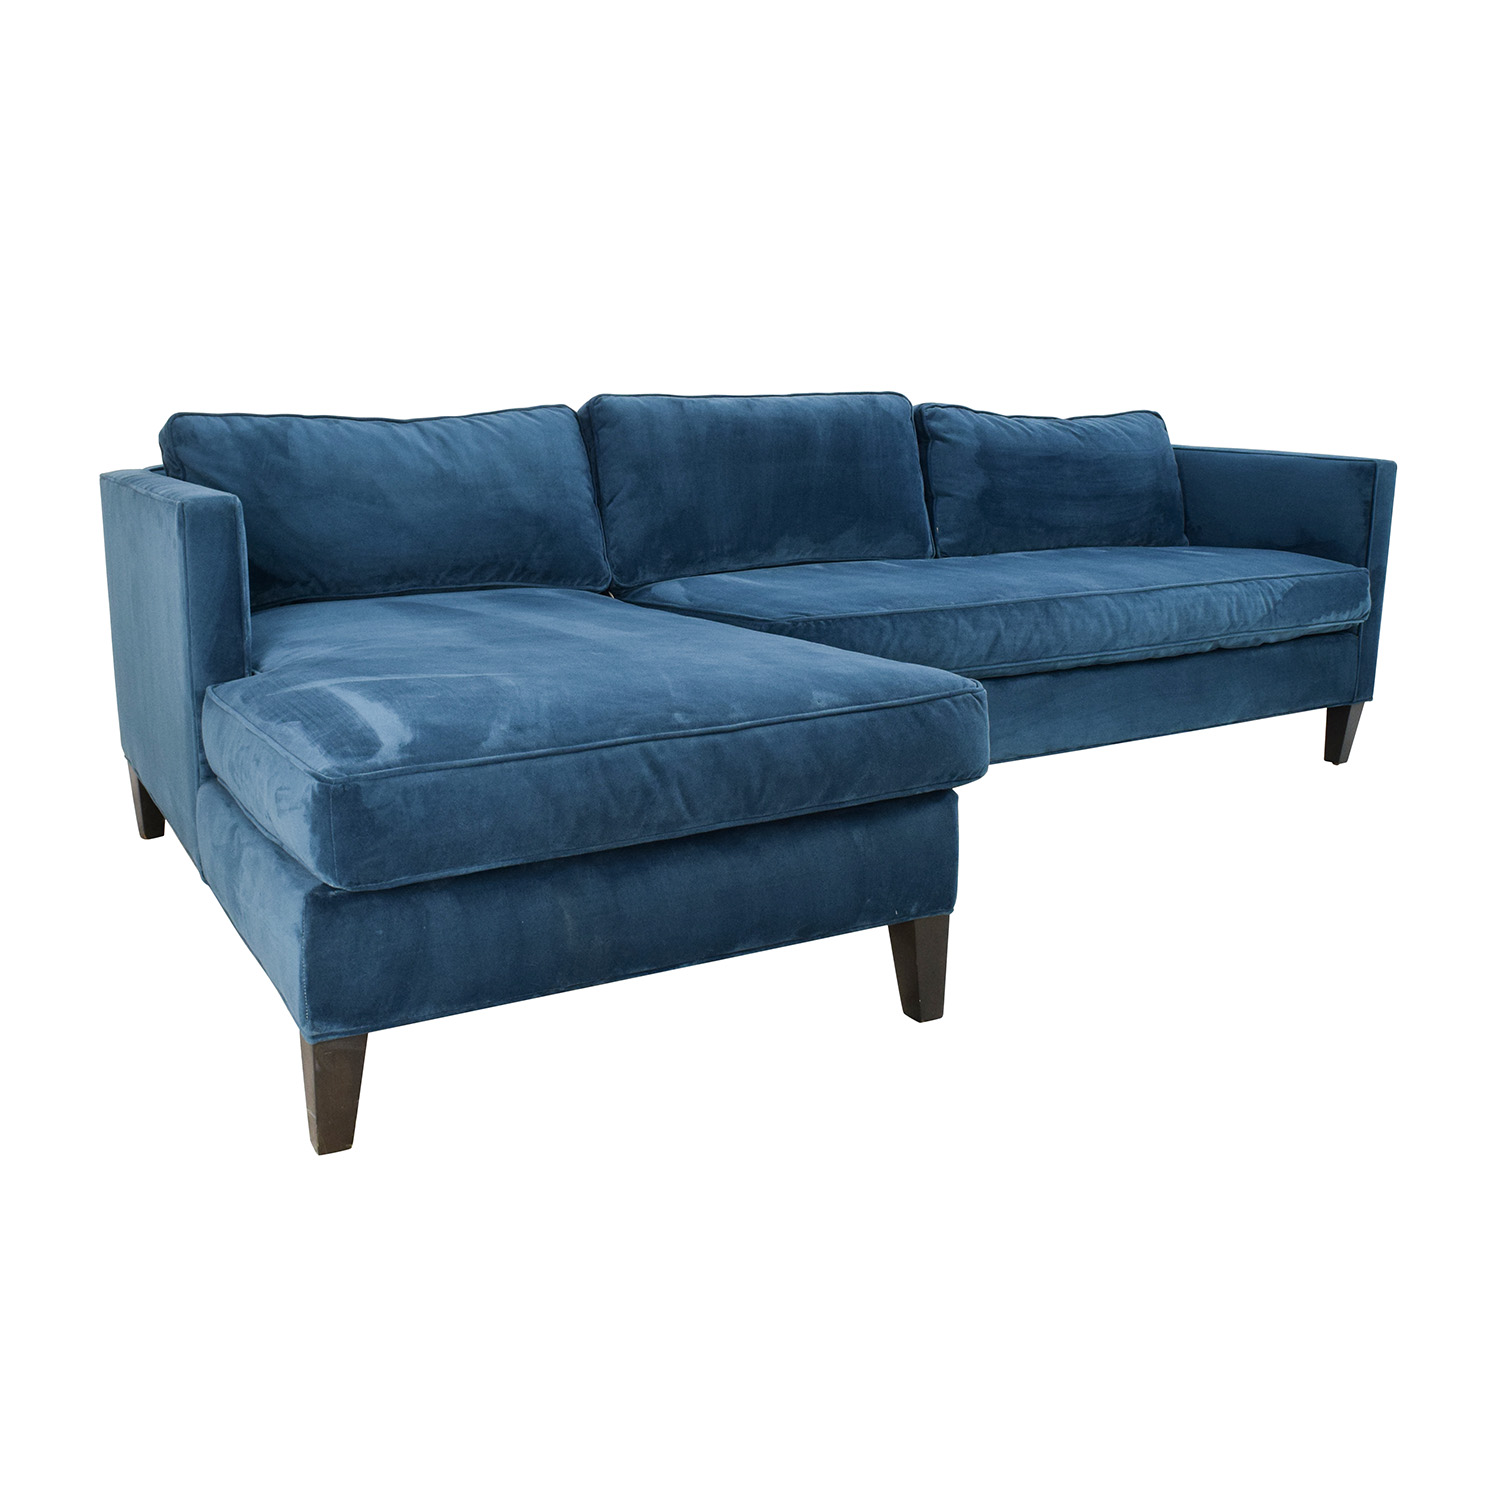 west elm sofa sleeper nixon pair super a mart inspirational sectional bed sofas